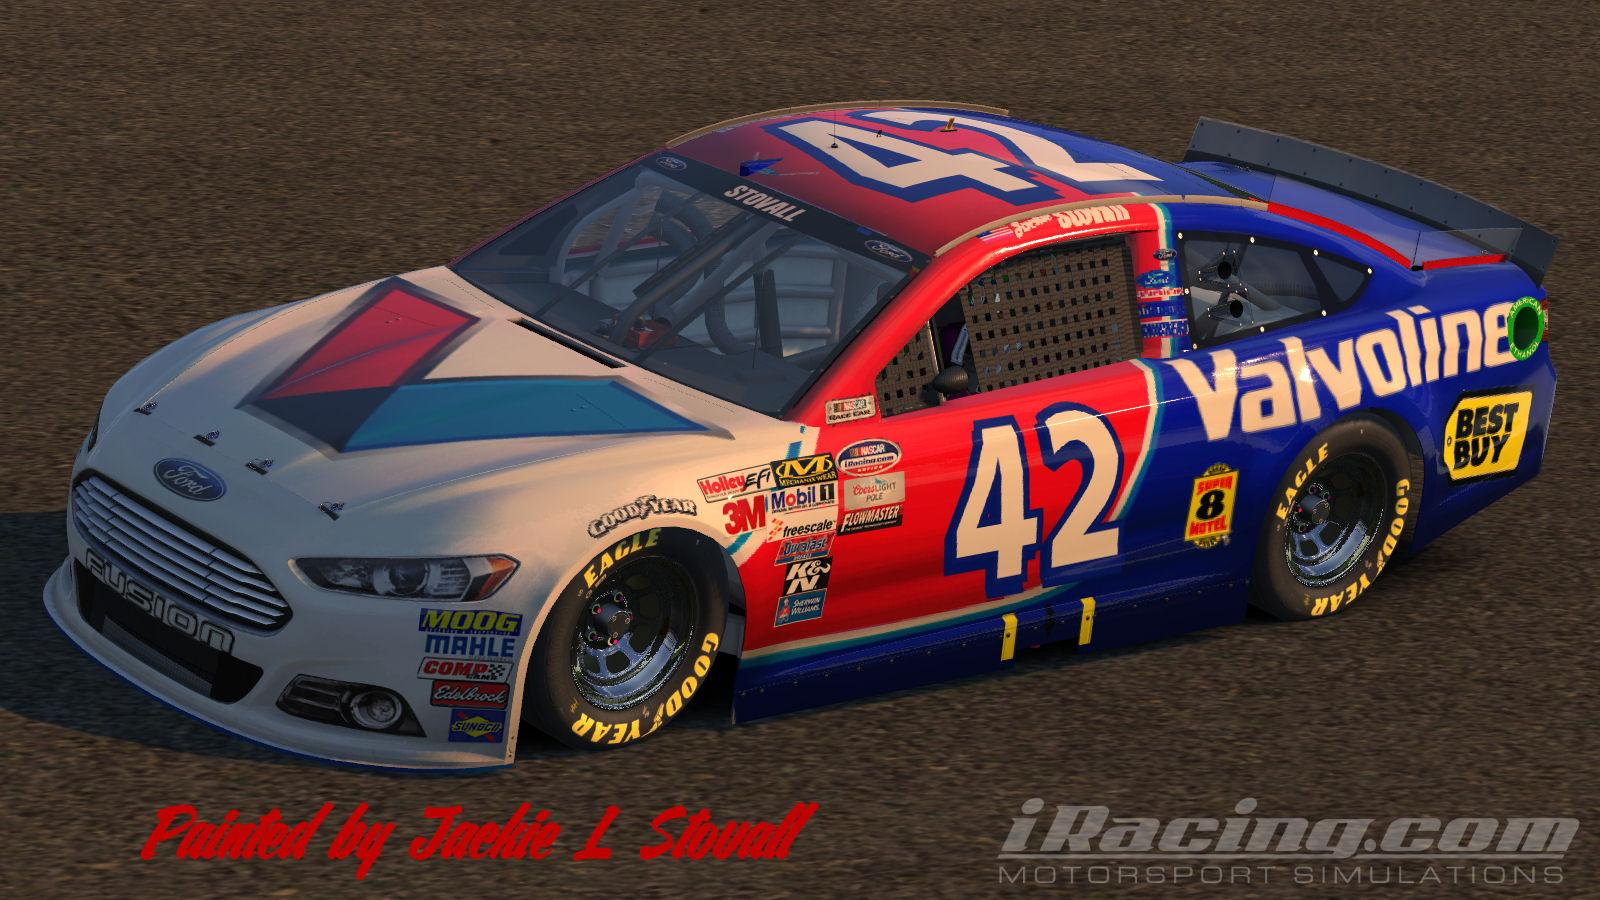 Valvoline by Jackie Stovall   Trading Paints 1600x900